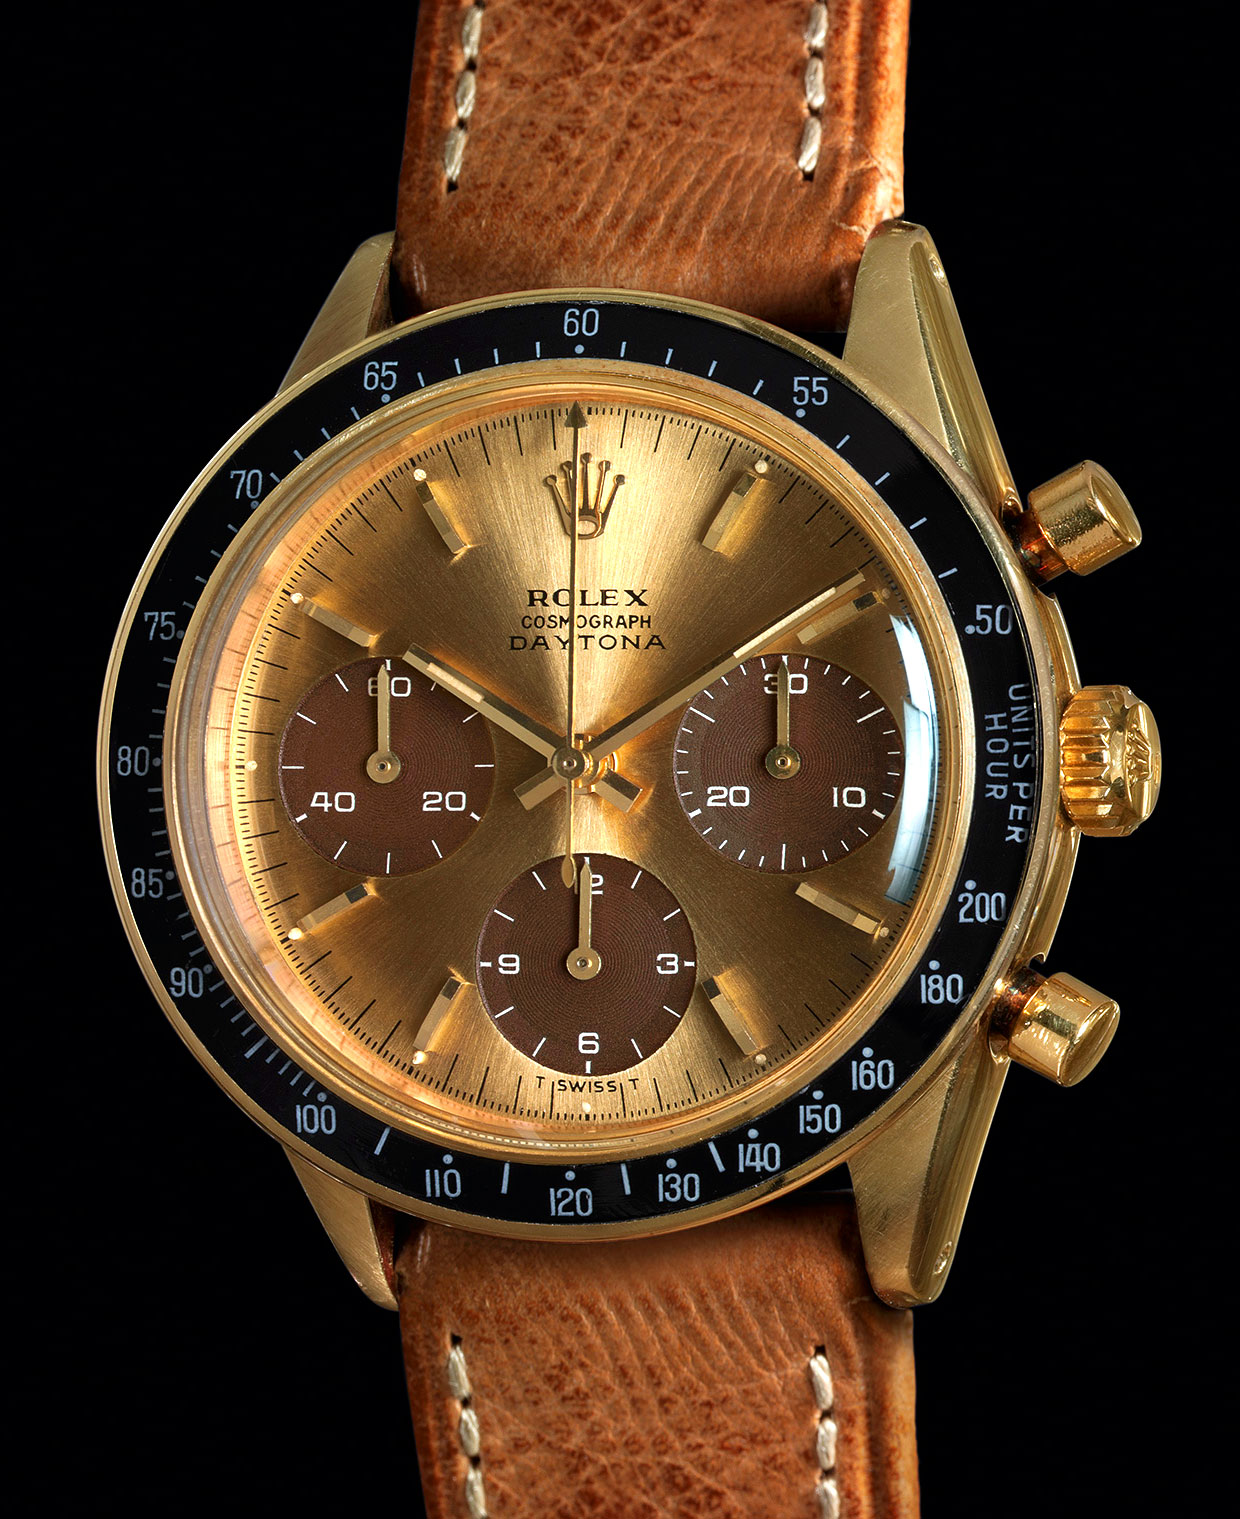 Wrist watch price in oman - At The Beginning Of 2007 We Began To Take Pictures Of These Watches I Knew Many Watch Collectors Who Shared My Same Passion For Beautiful And Particular